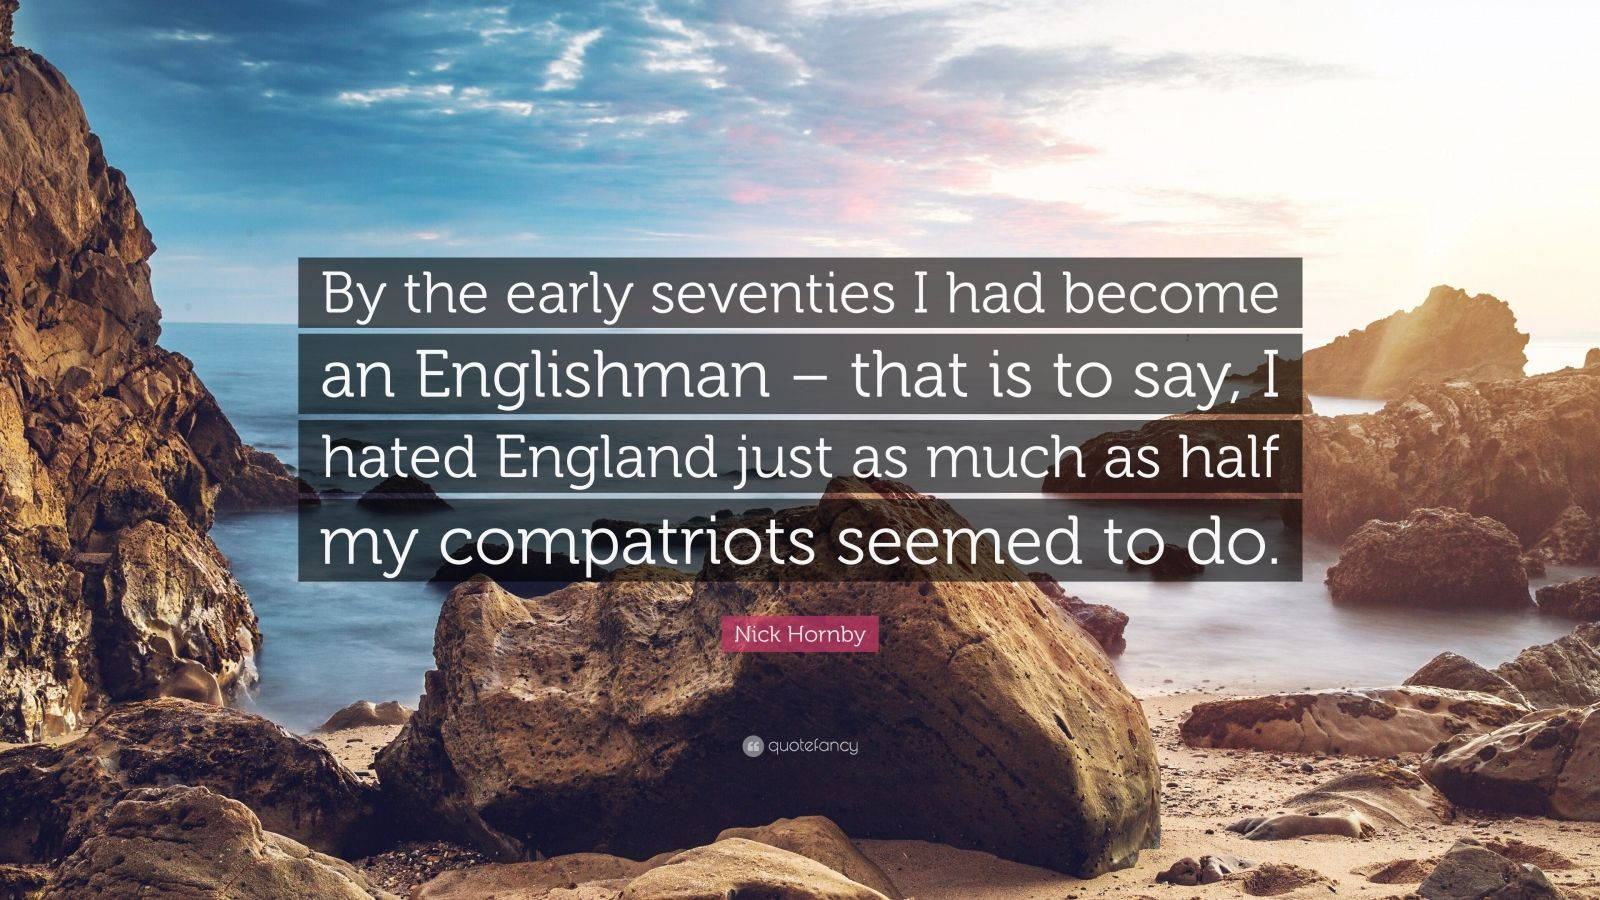 "Nick Hornby Quote: ""By the early seventies I had become an Englishman – that is to say, I hated England just as much as half my compatriots seemed to do."""